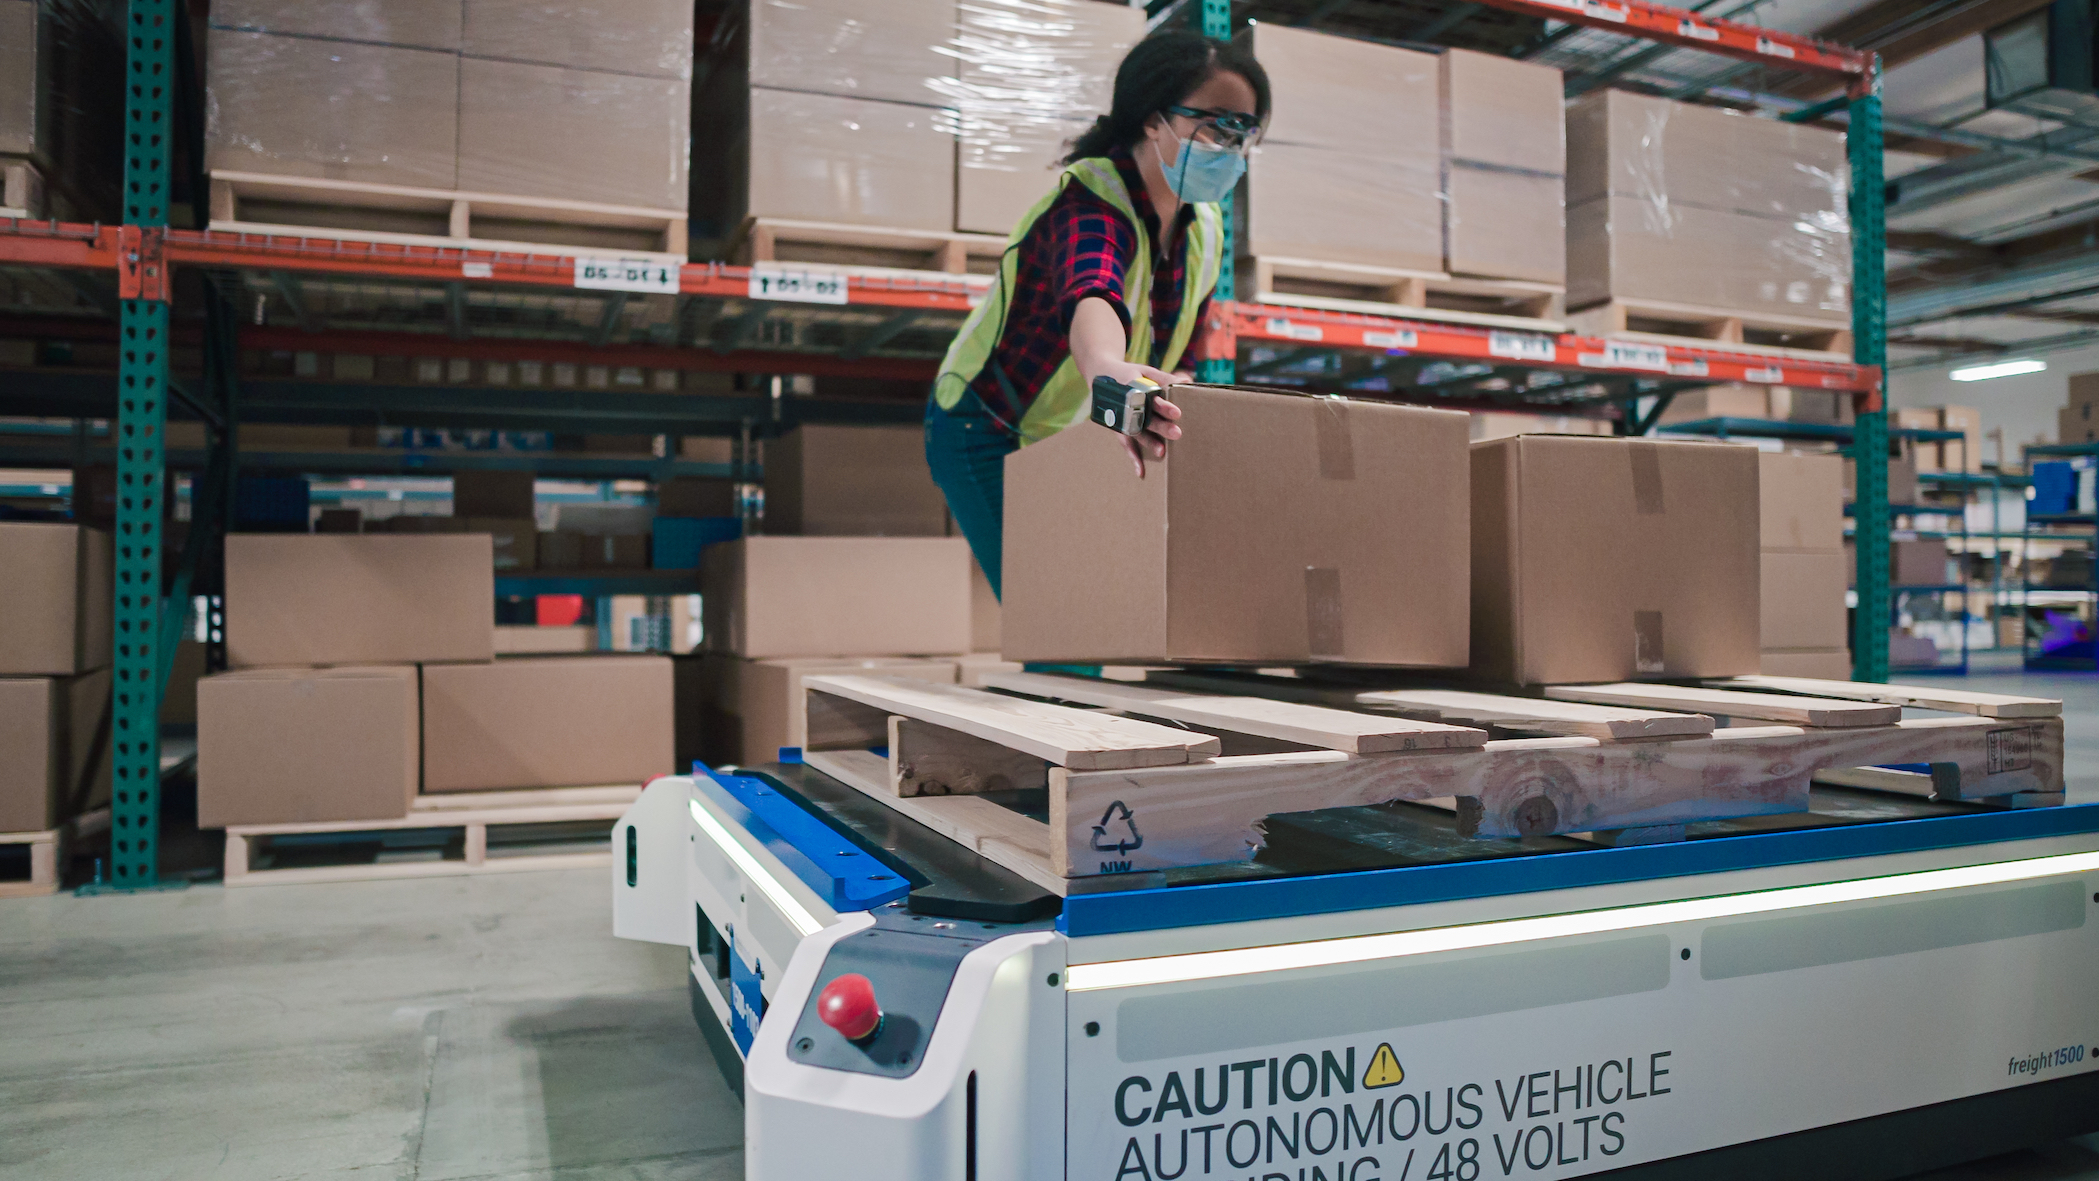 Zebra Technologies has completed its acquisition of Fetch Robotics for $290 million. With Fetch under its belt, Zebra will be able to leverage the company's Autonomous Mobile Robots (AMRs), which are used for optimized picking in fulfillment centers and distribution centers, just-in-time material delivery in manufacturing facilities and automating manual material movement in any facility.